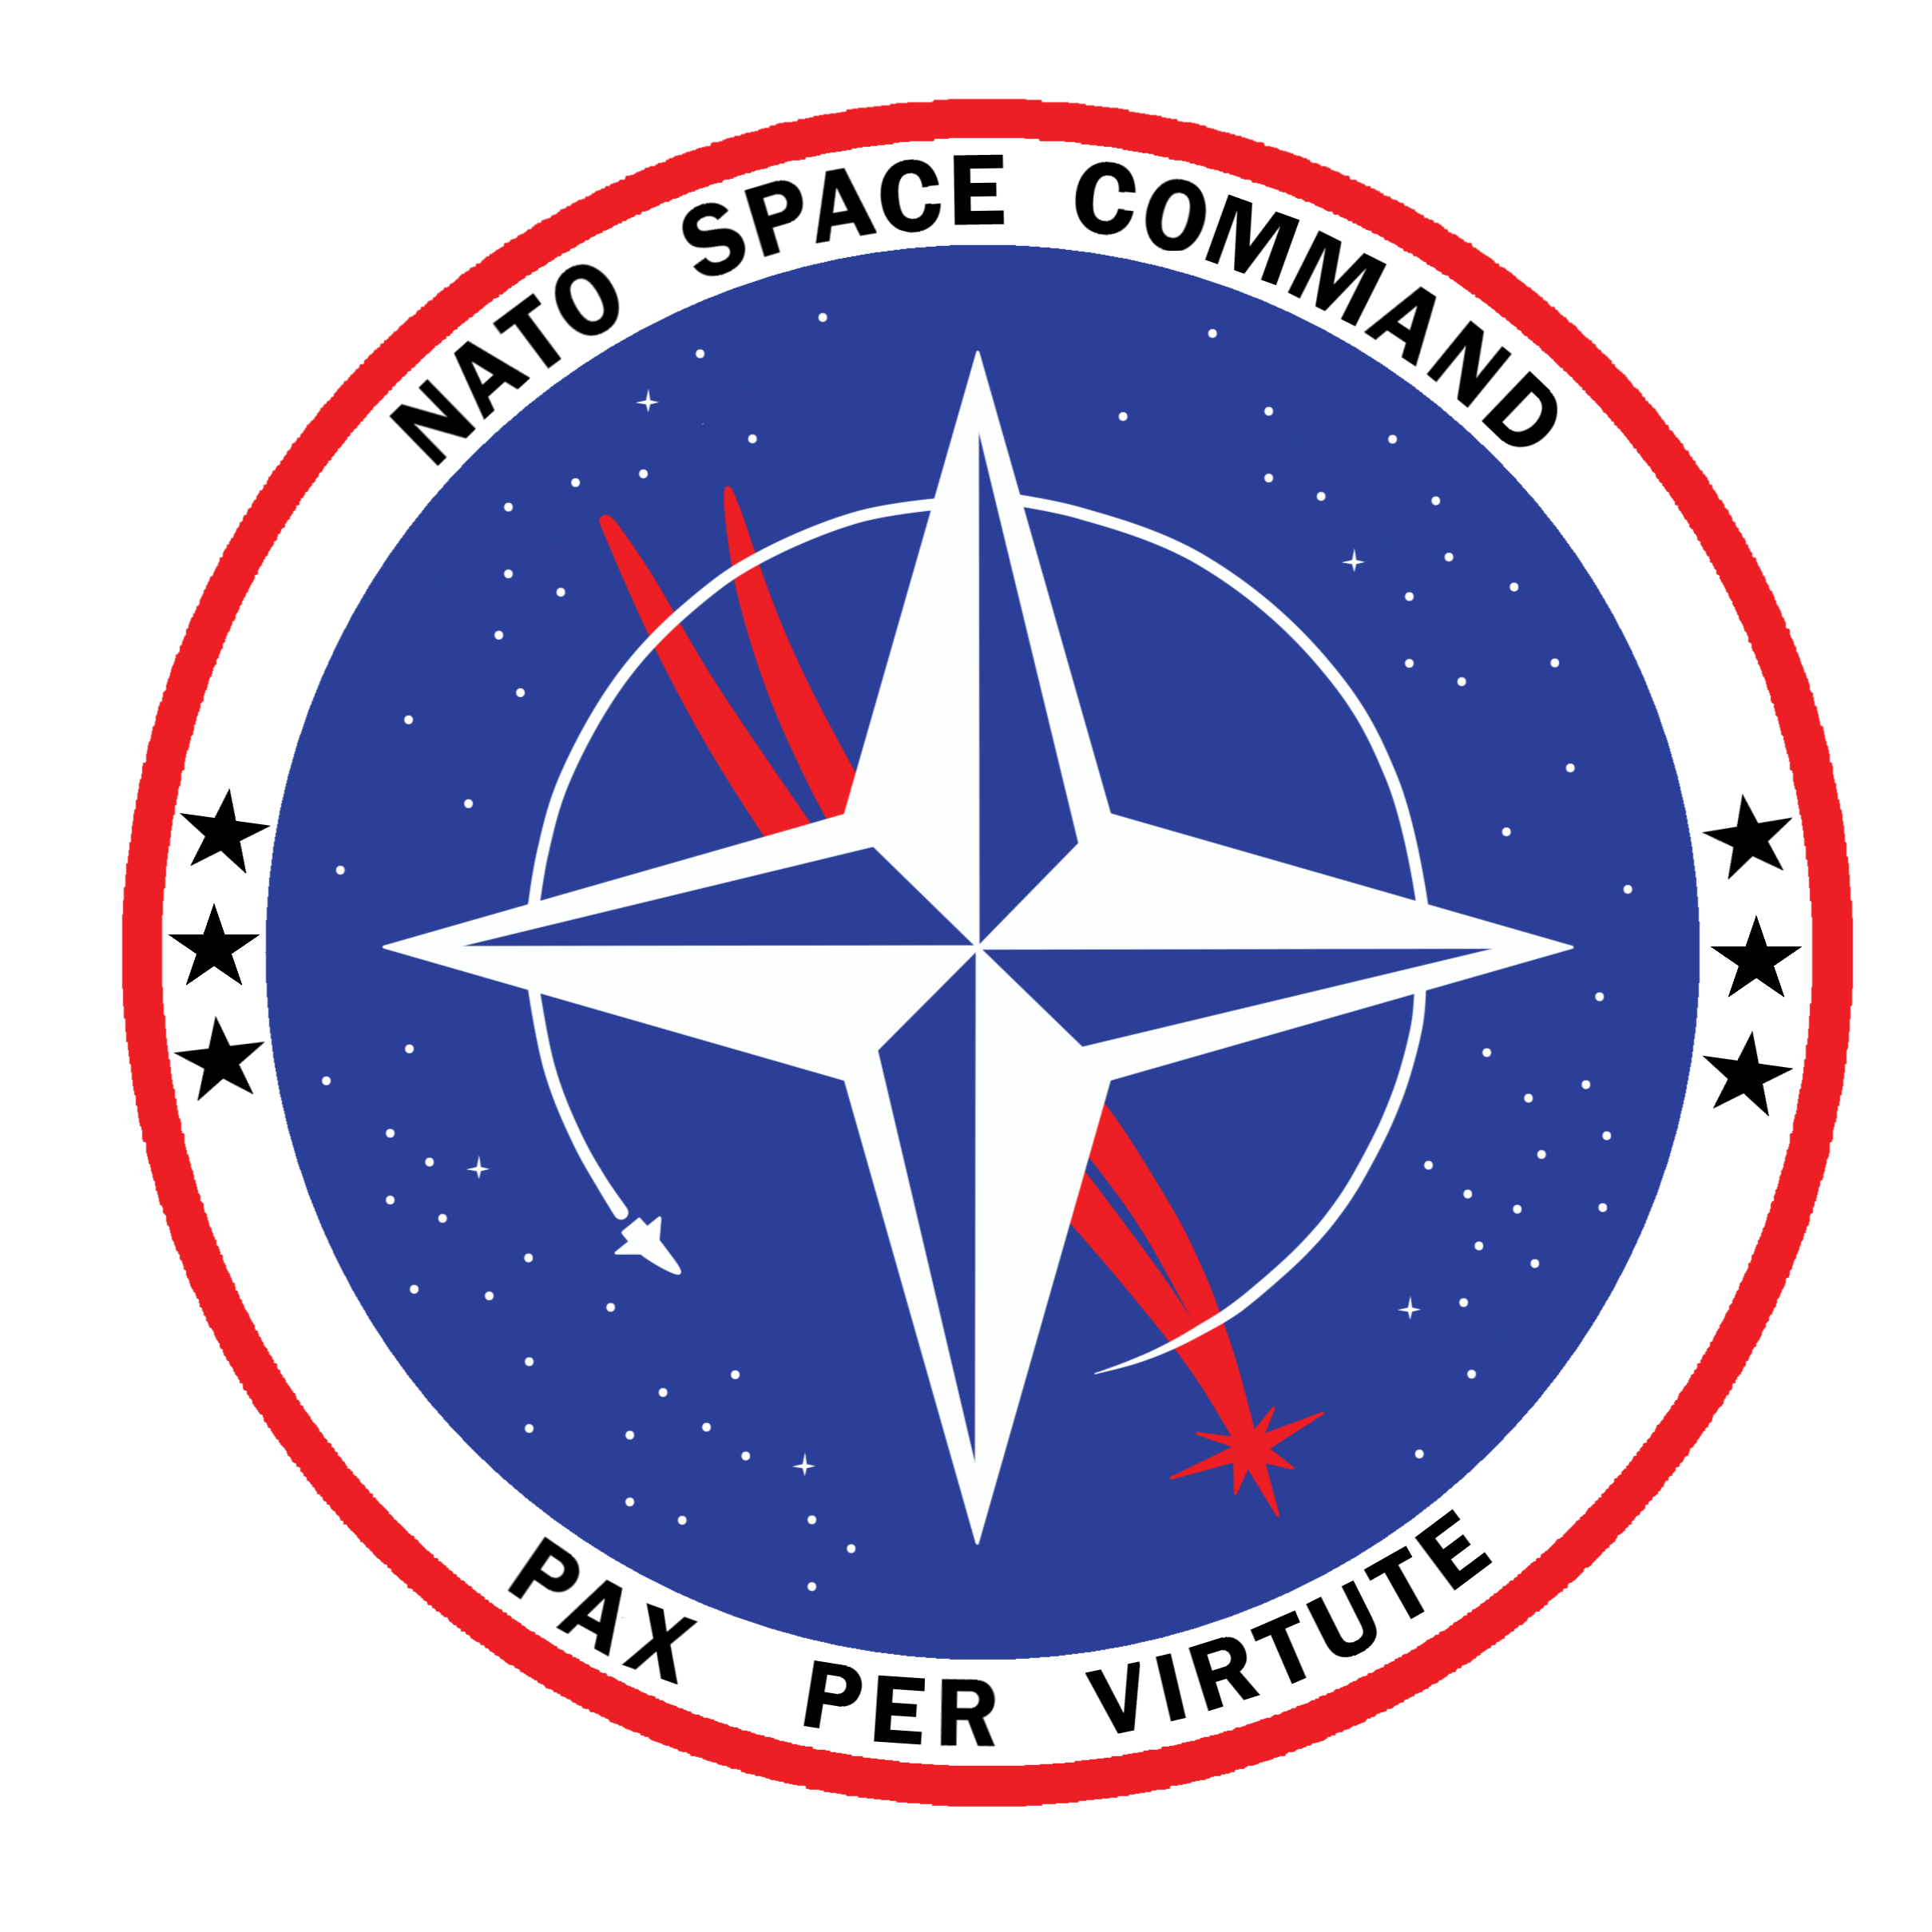 space force circle logo nato space command logo the artist deviantart #41299